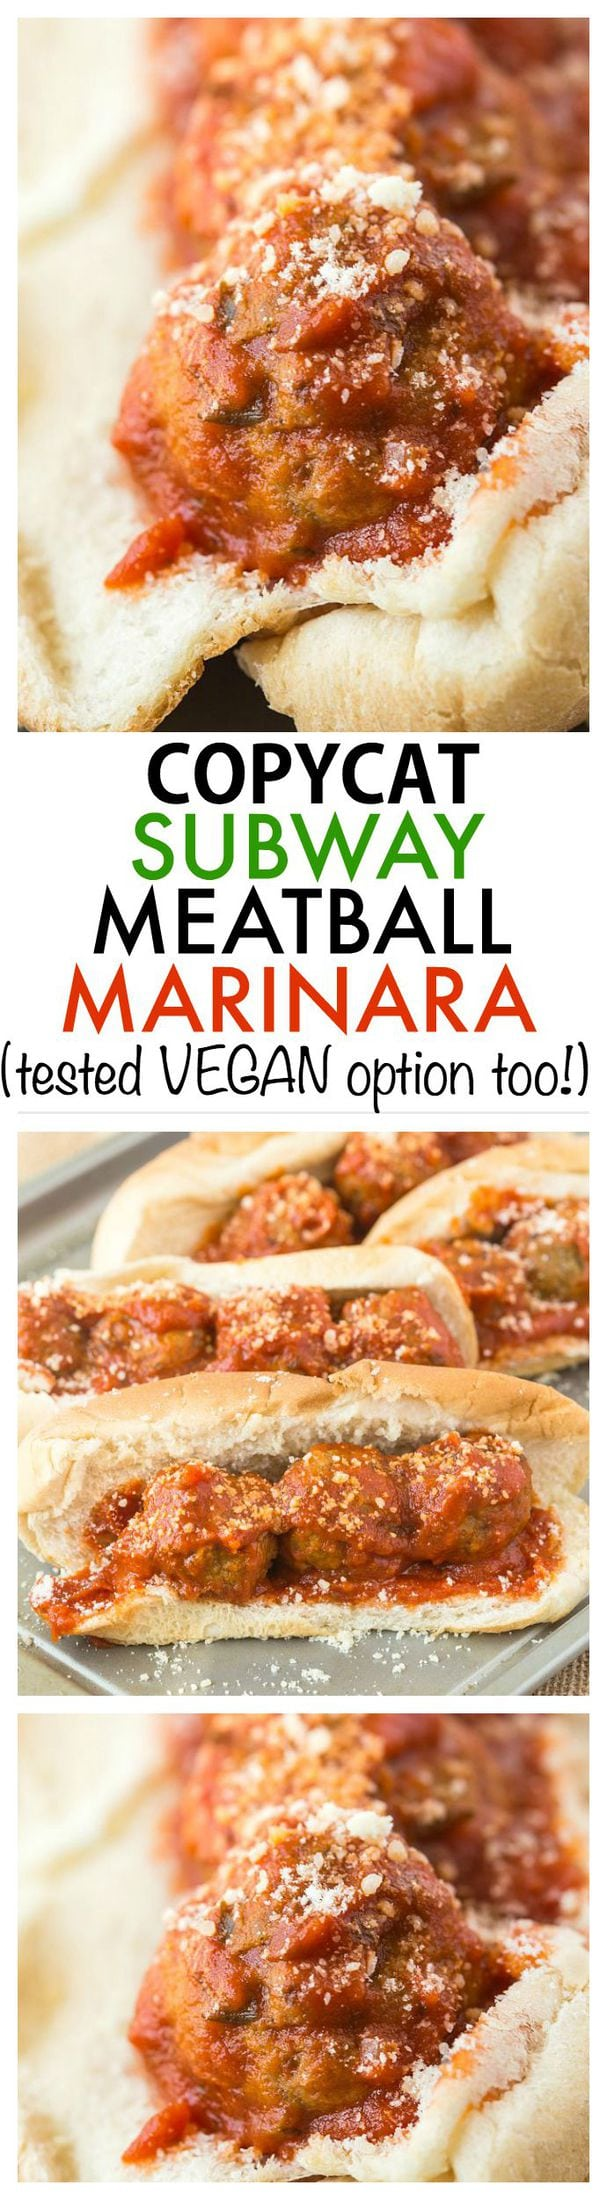 Copycat Subway Meatball Marinara Sandwich- Much more delicious that the original without the additives and tested with BOTH a paleo and VEGAN option without sacrificing taste! {vegan, paleo, gluten-free} -thebigmansworld.com